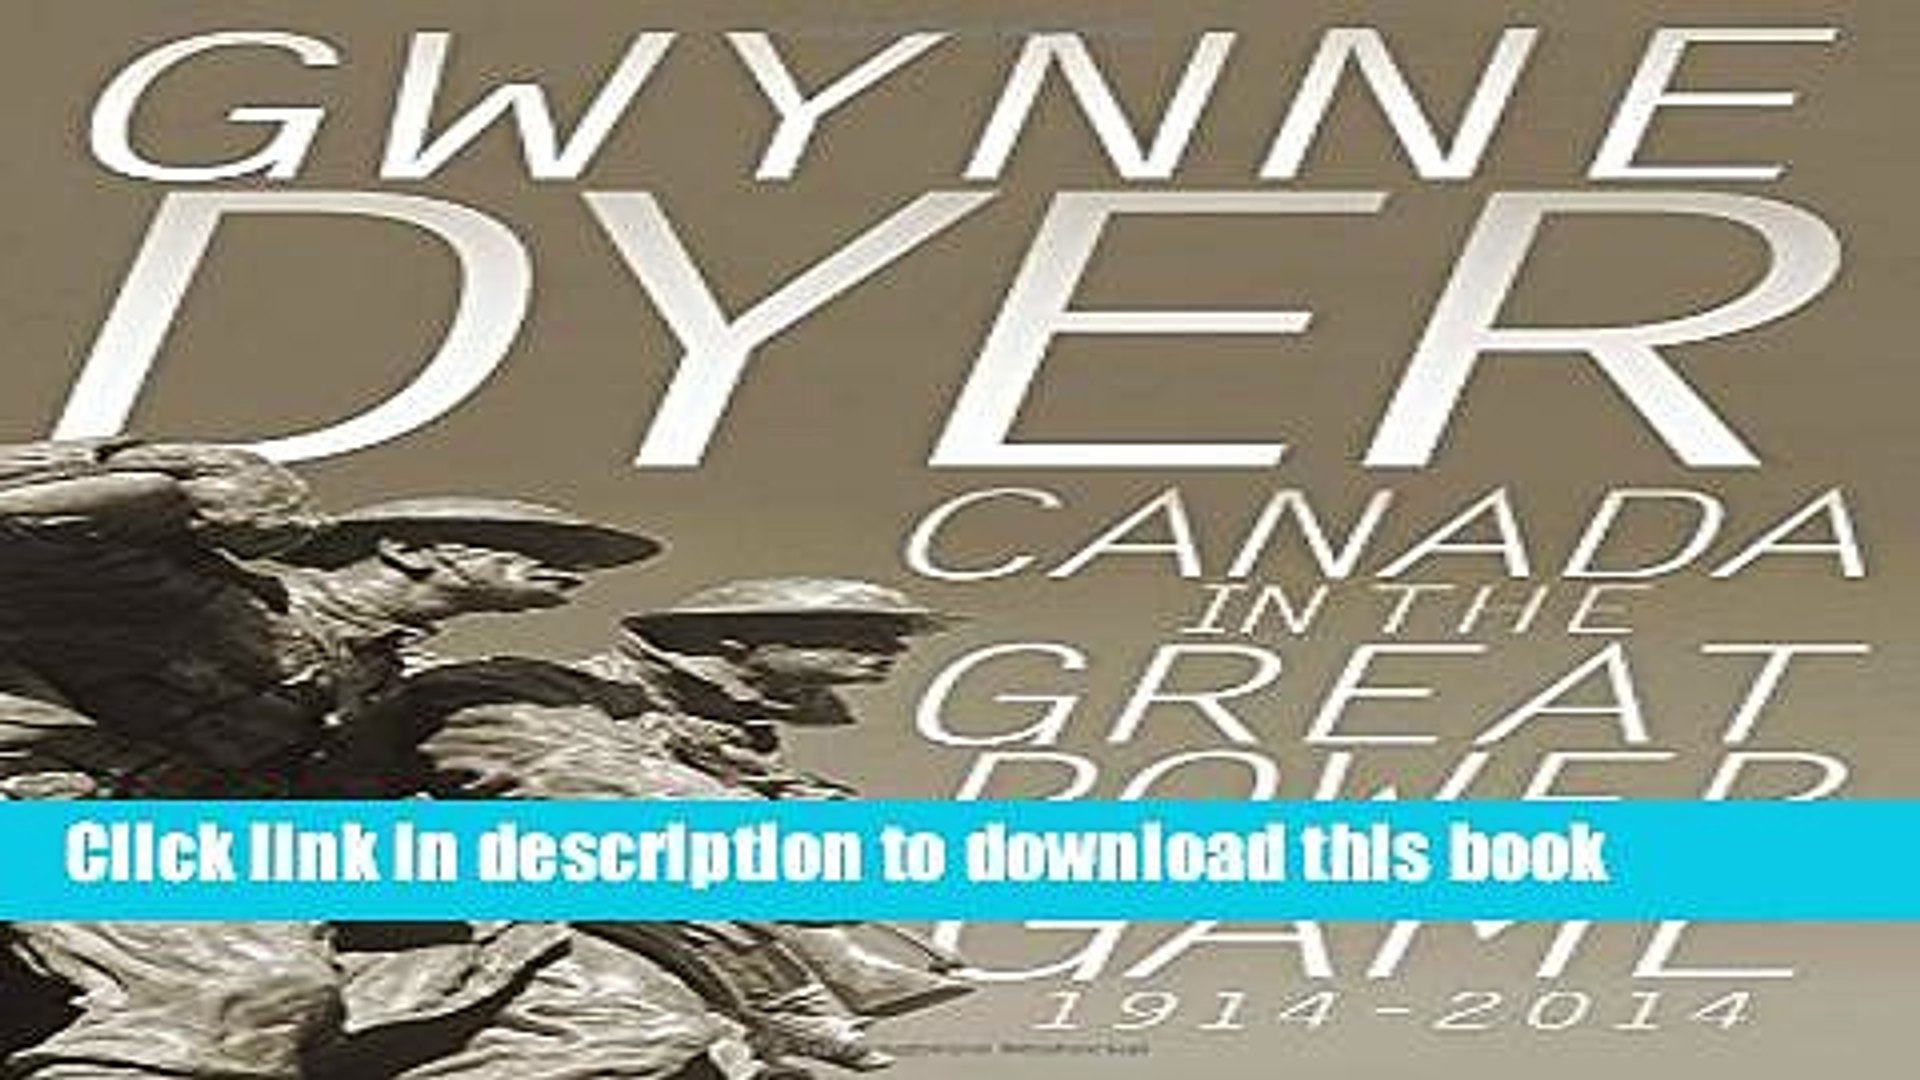 [Popular] Canada in the Great Power Game 1914-2014 Hardcover OnlineCollection